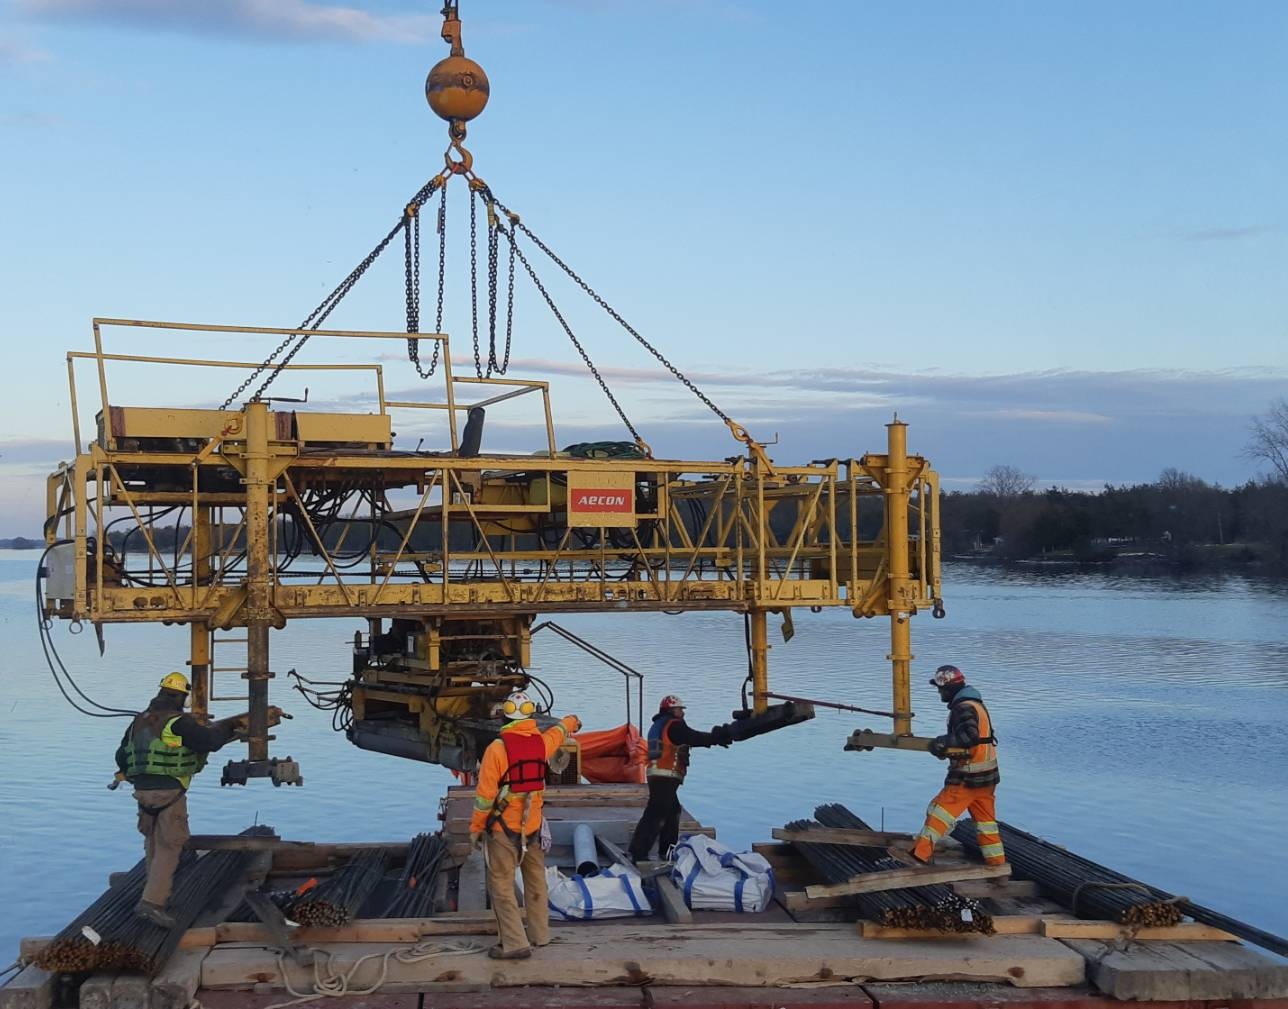 Concrete finisher being prepared to be lifted from the barge o the deck